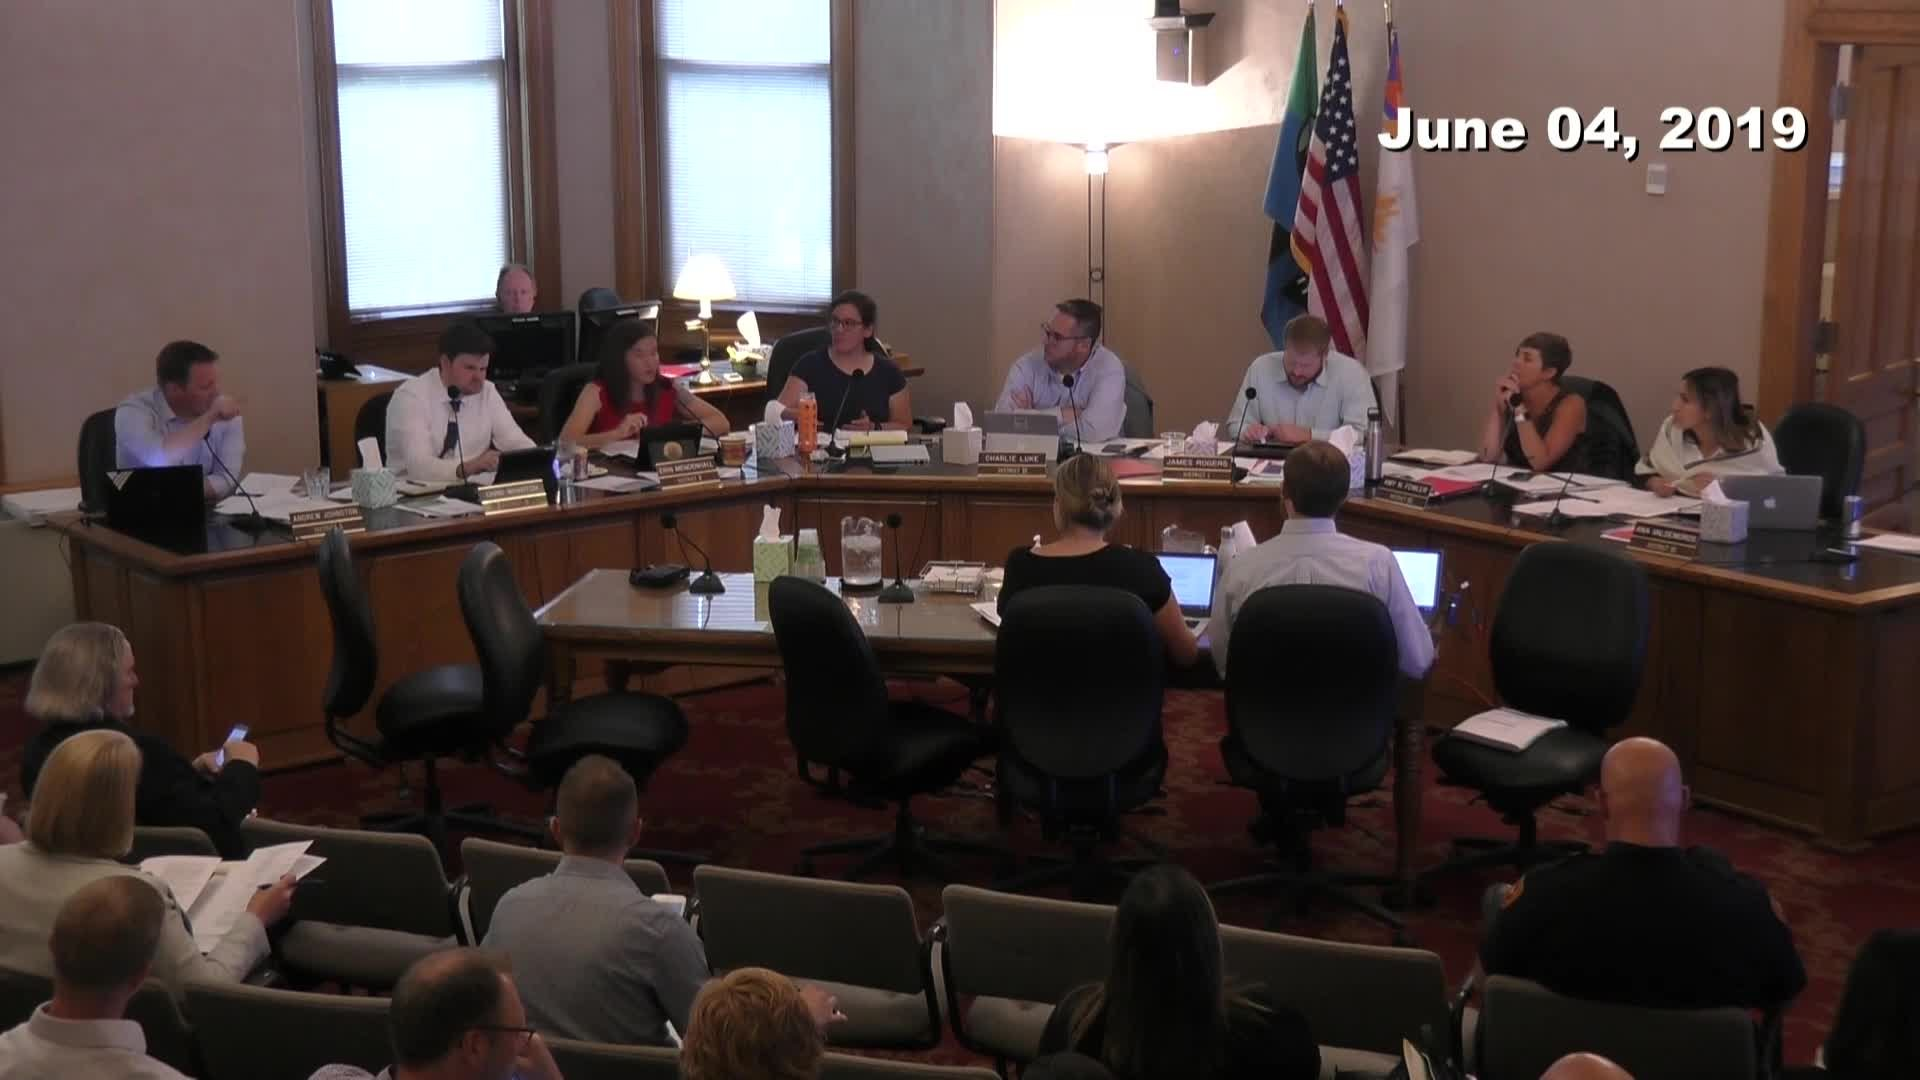 City Council Work Session - 06/04/2019